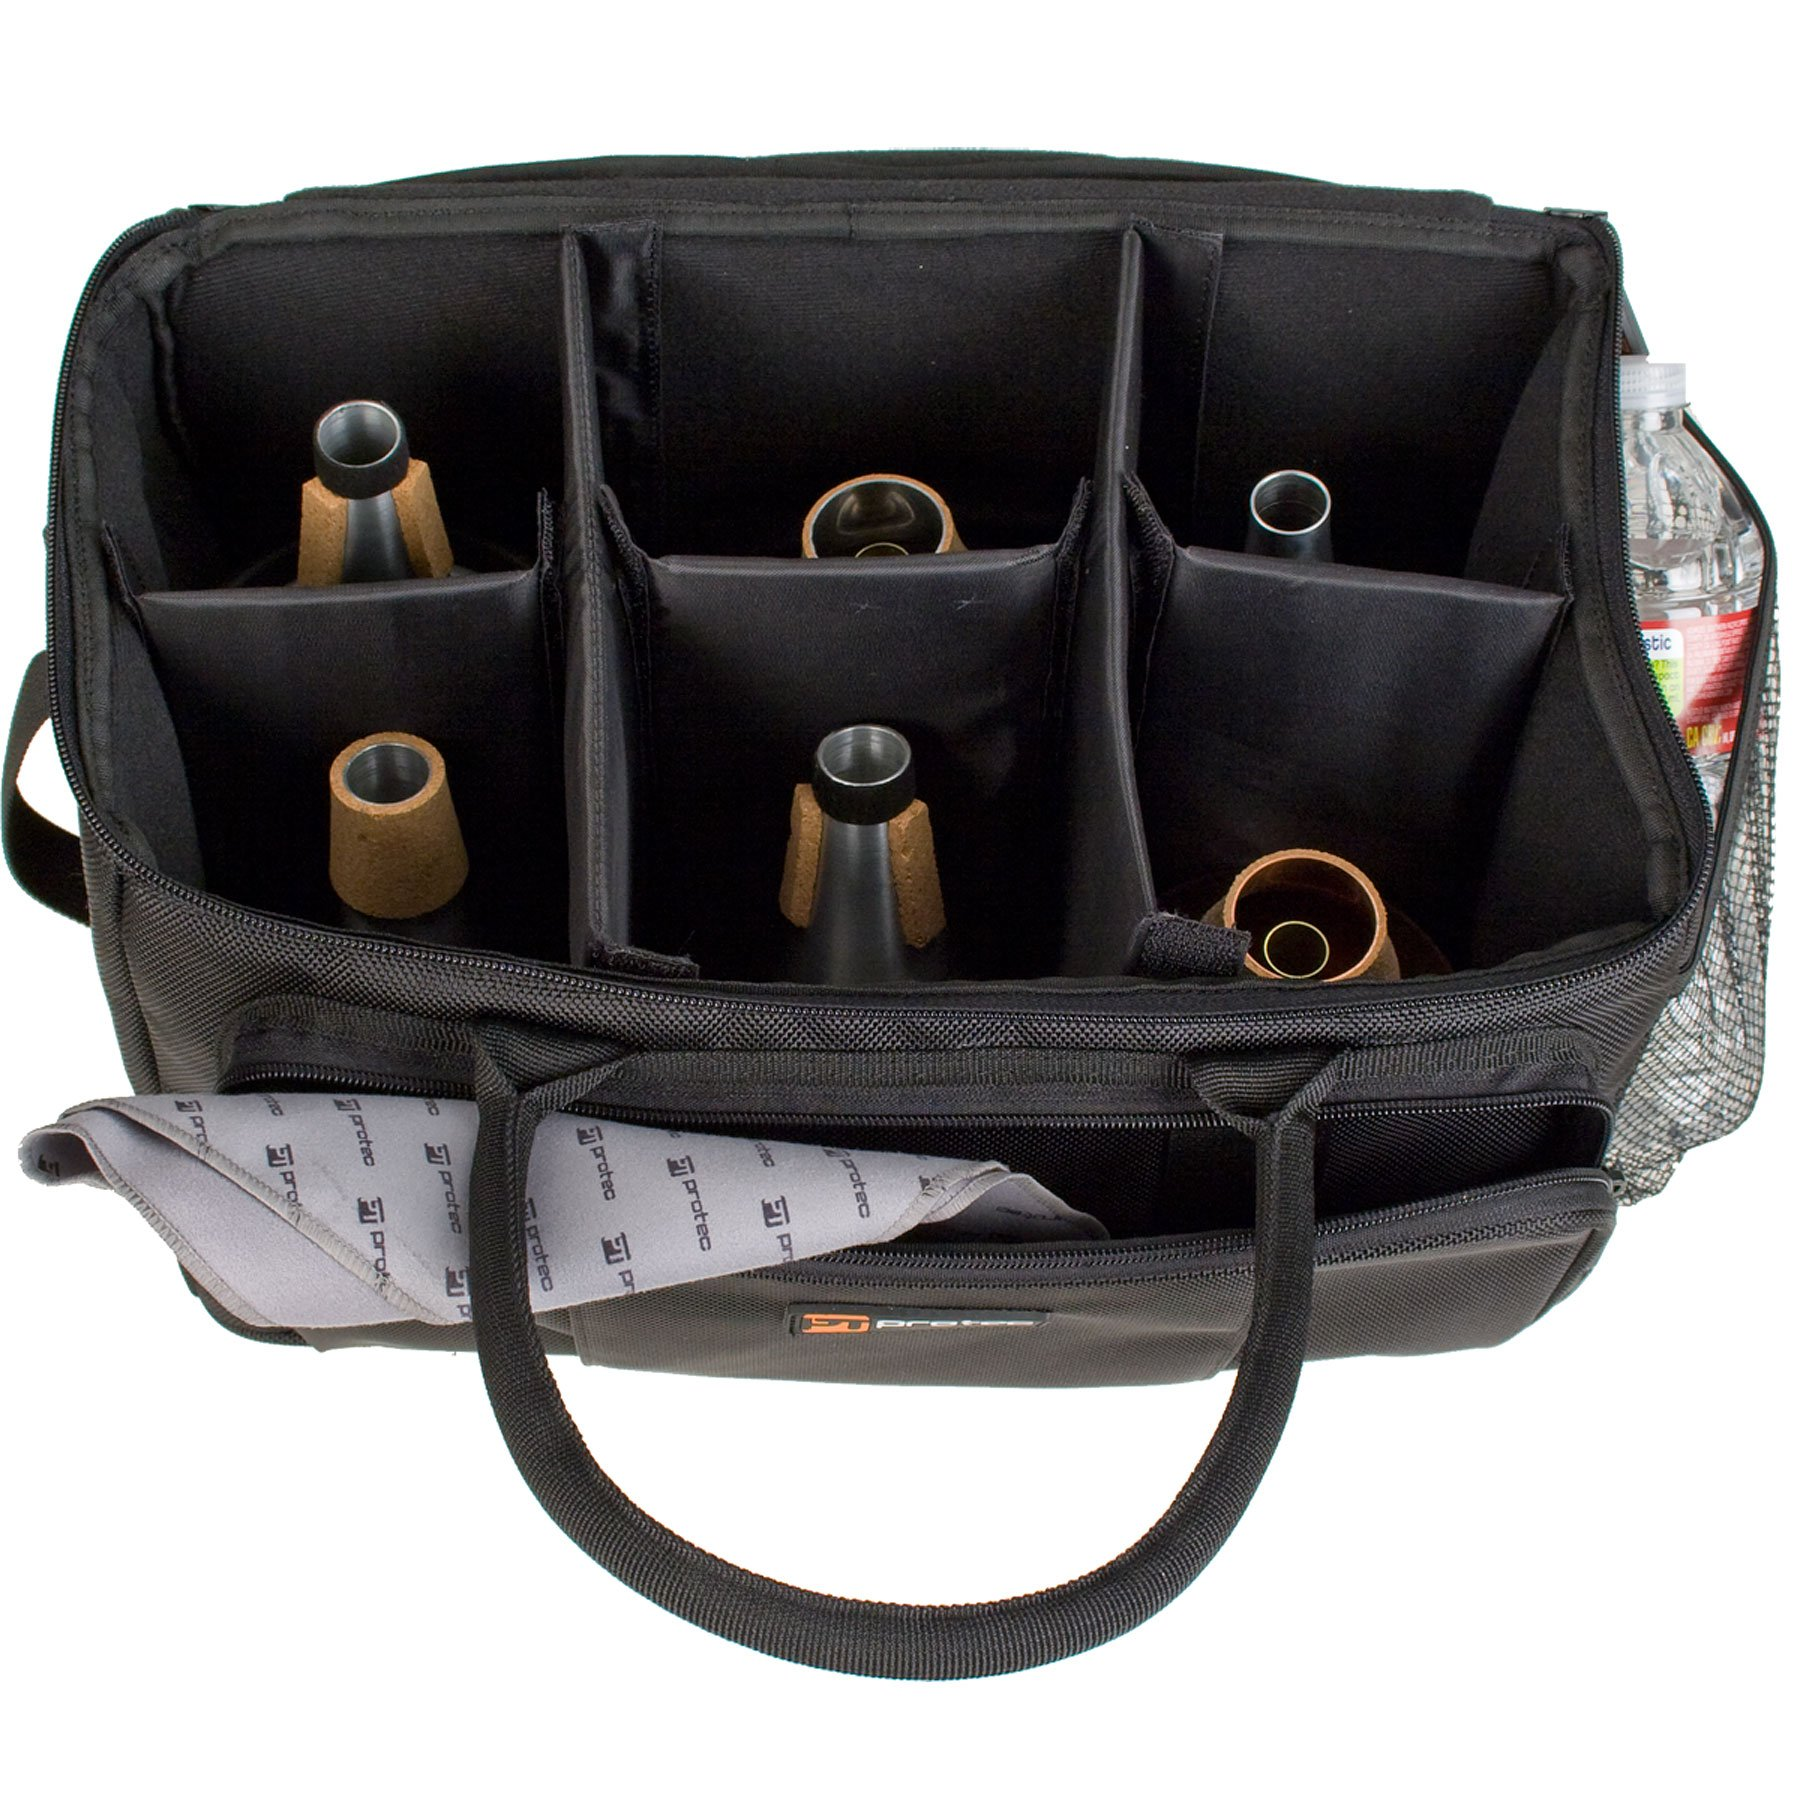 a914acc85113 Pro Tec M404 Trumpet Multiple Mute Bag with Modular Walls product image